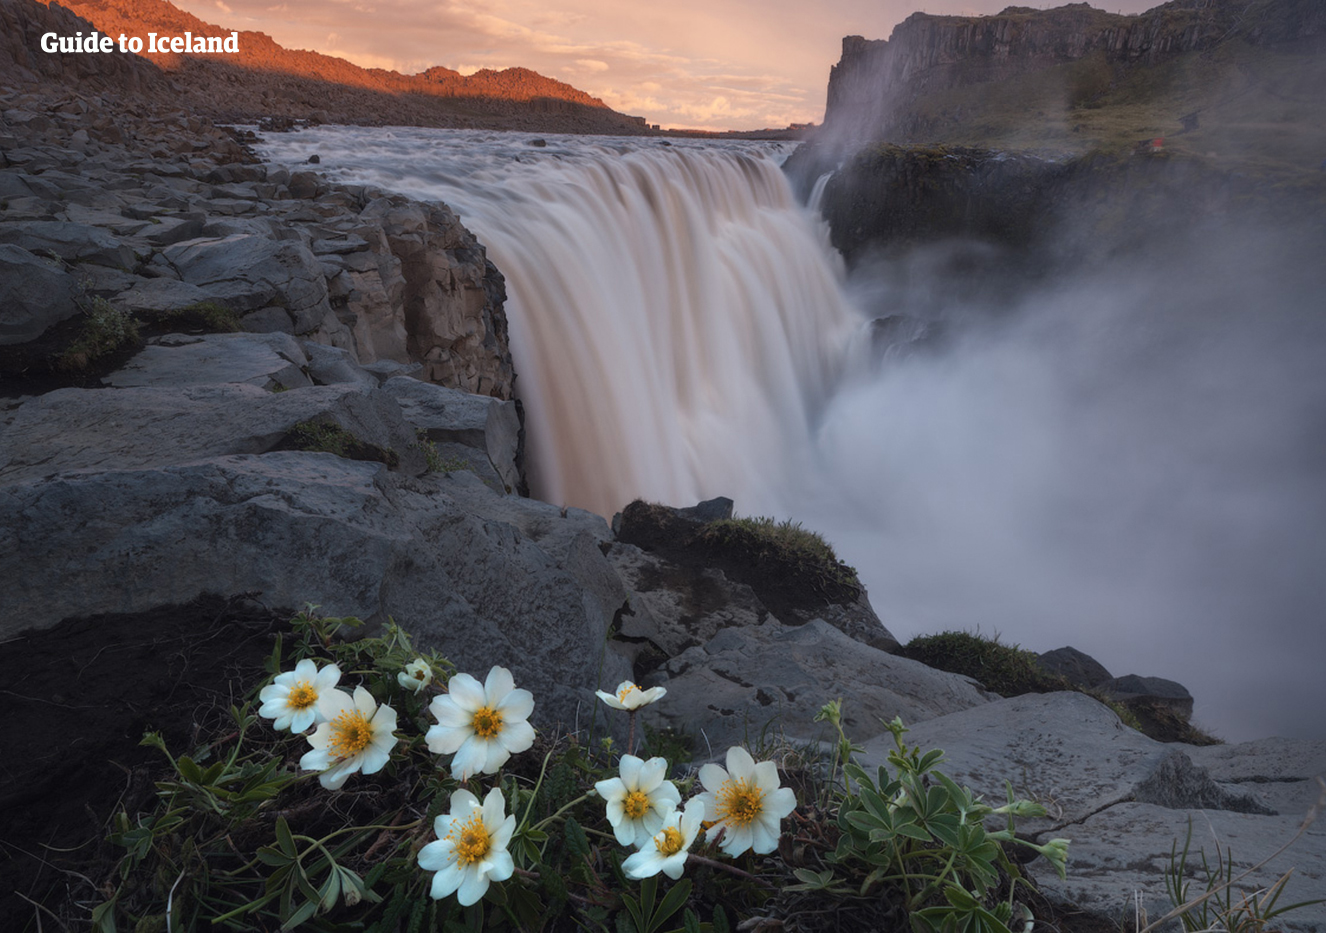 The majestic Dettifoss waterfall northeast Iceland.